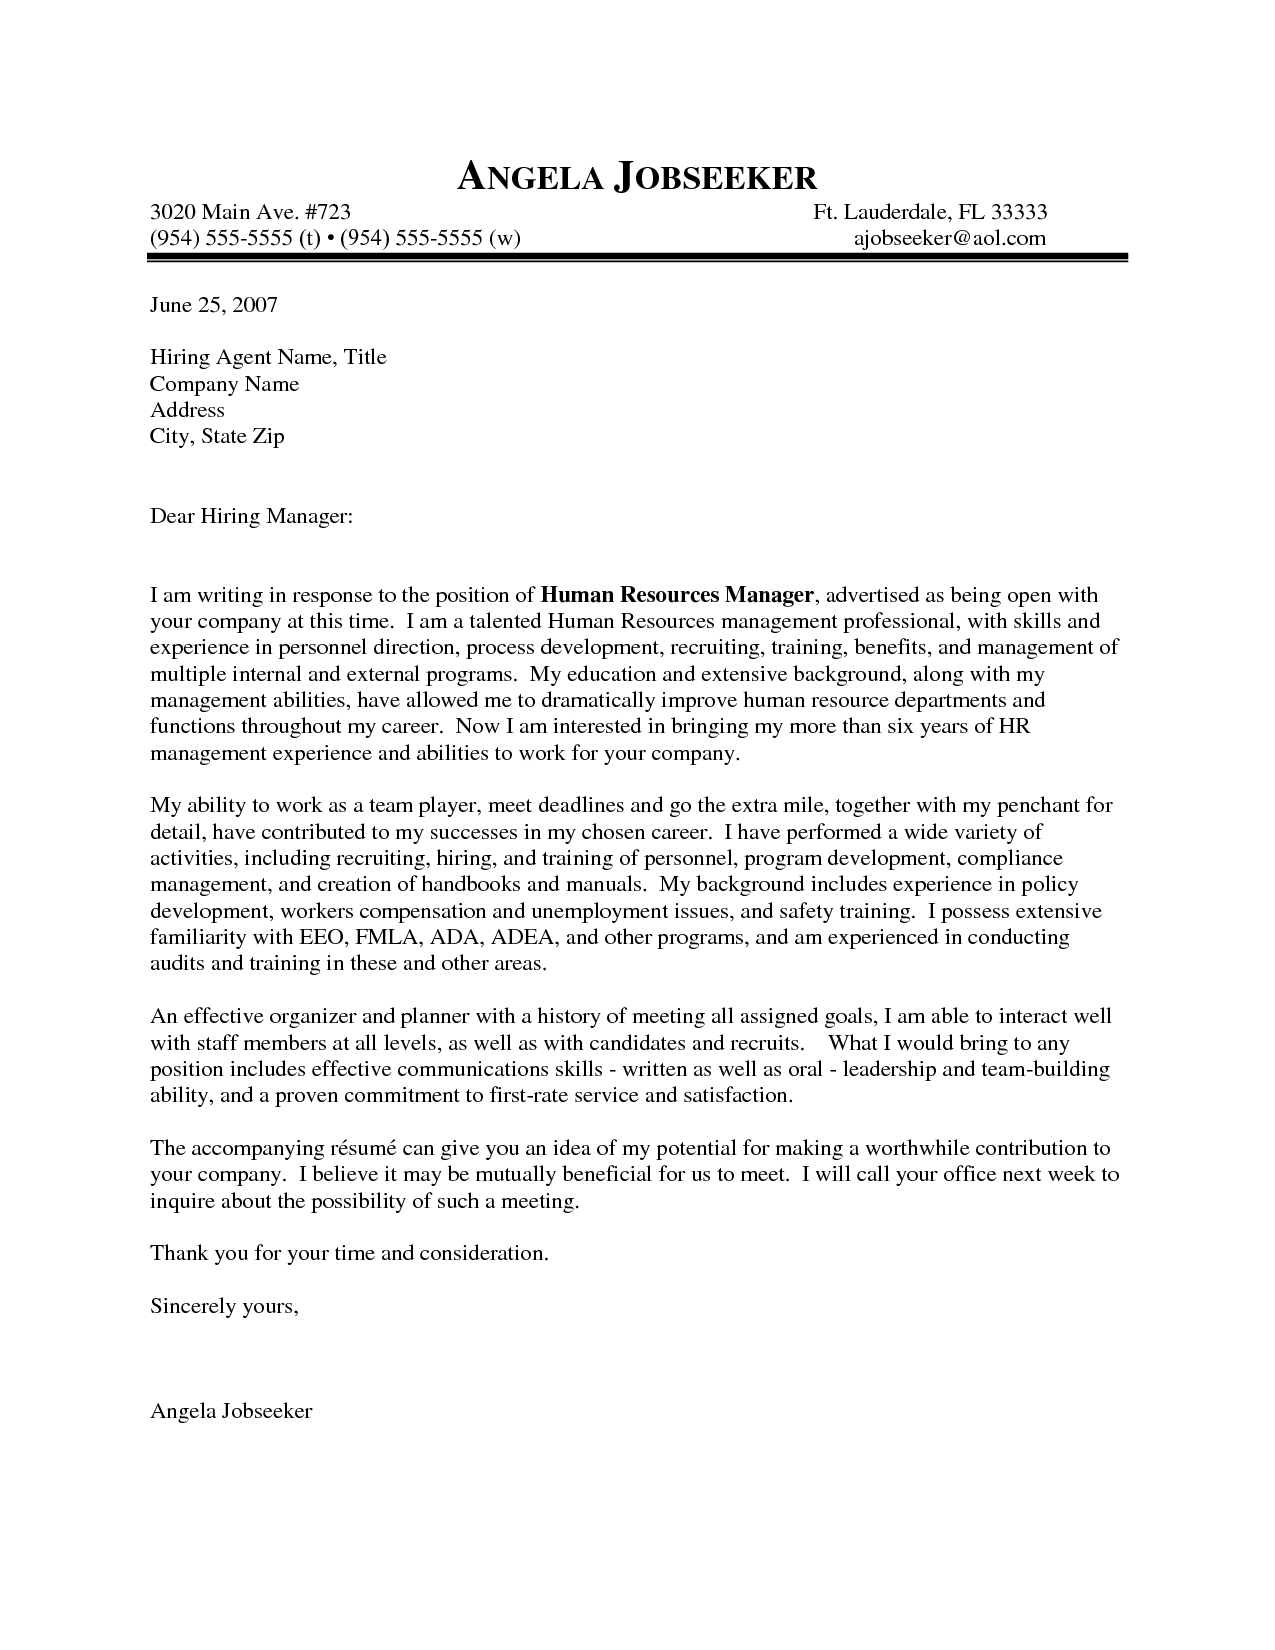 Outstanding Cover Letter Examples – Human Resources Cover Letter